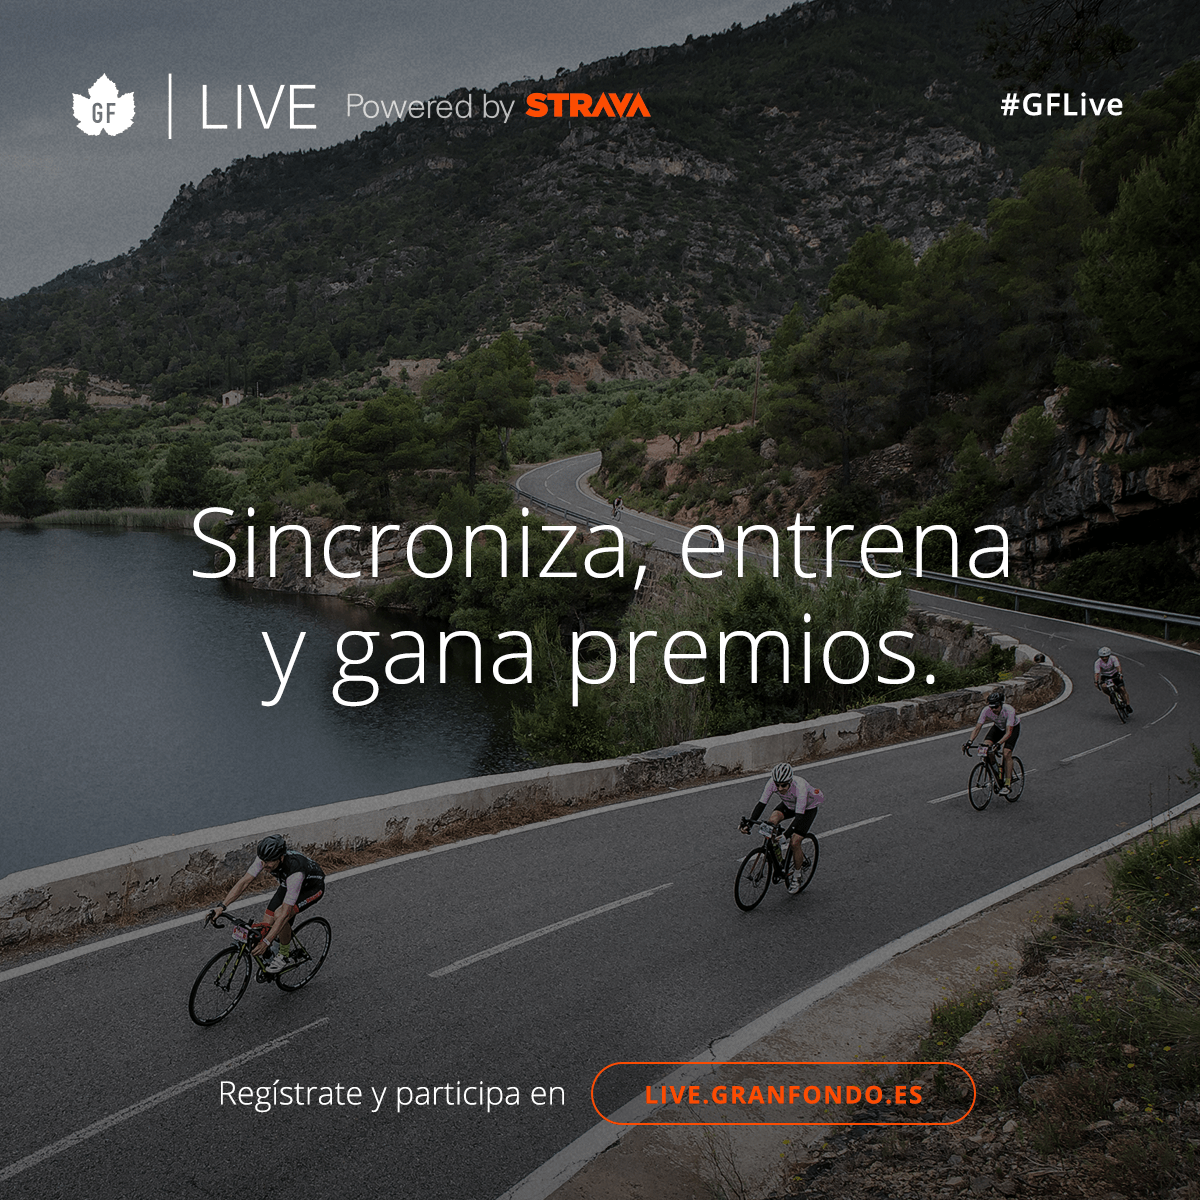 gflive_post_lanzamiento-2 Nace la plataforma digital GF Live powered by STRAVA Noticias ciclismo